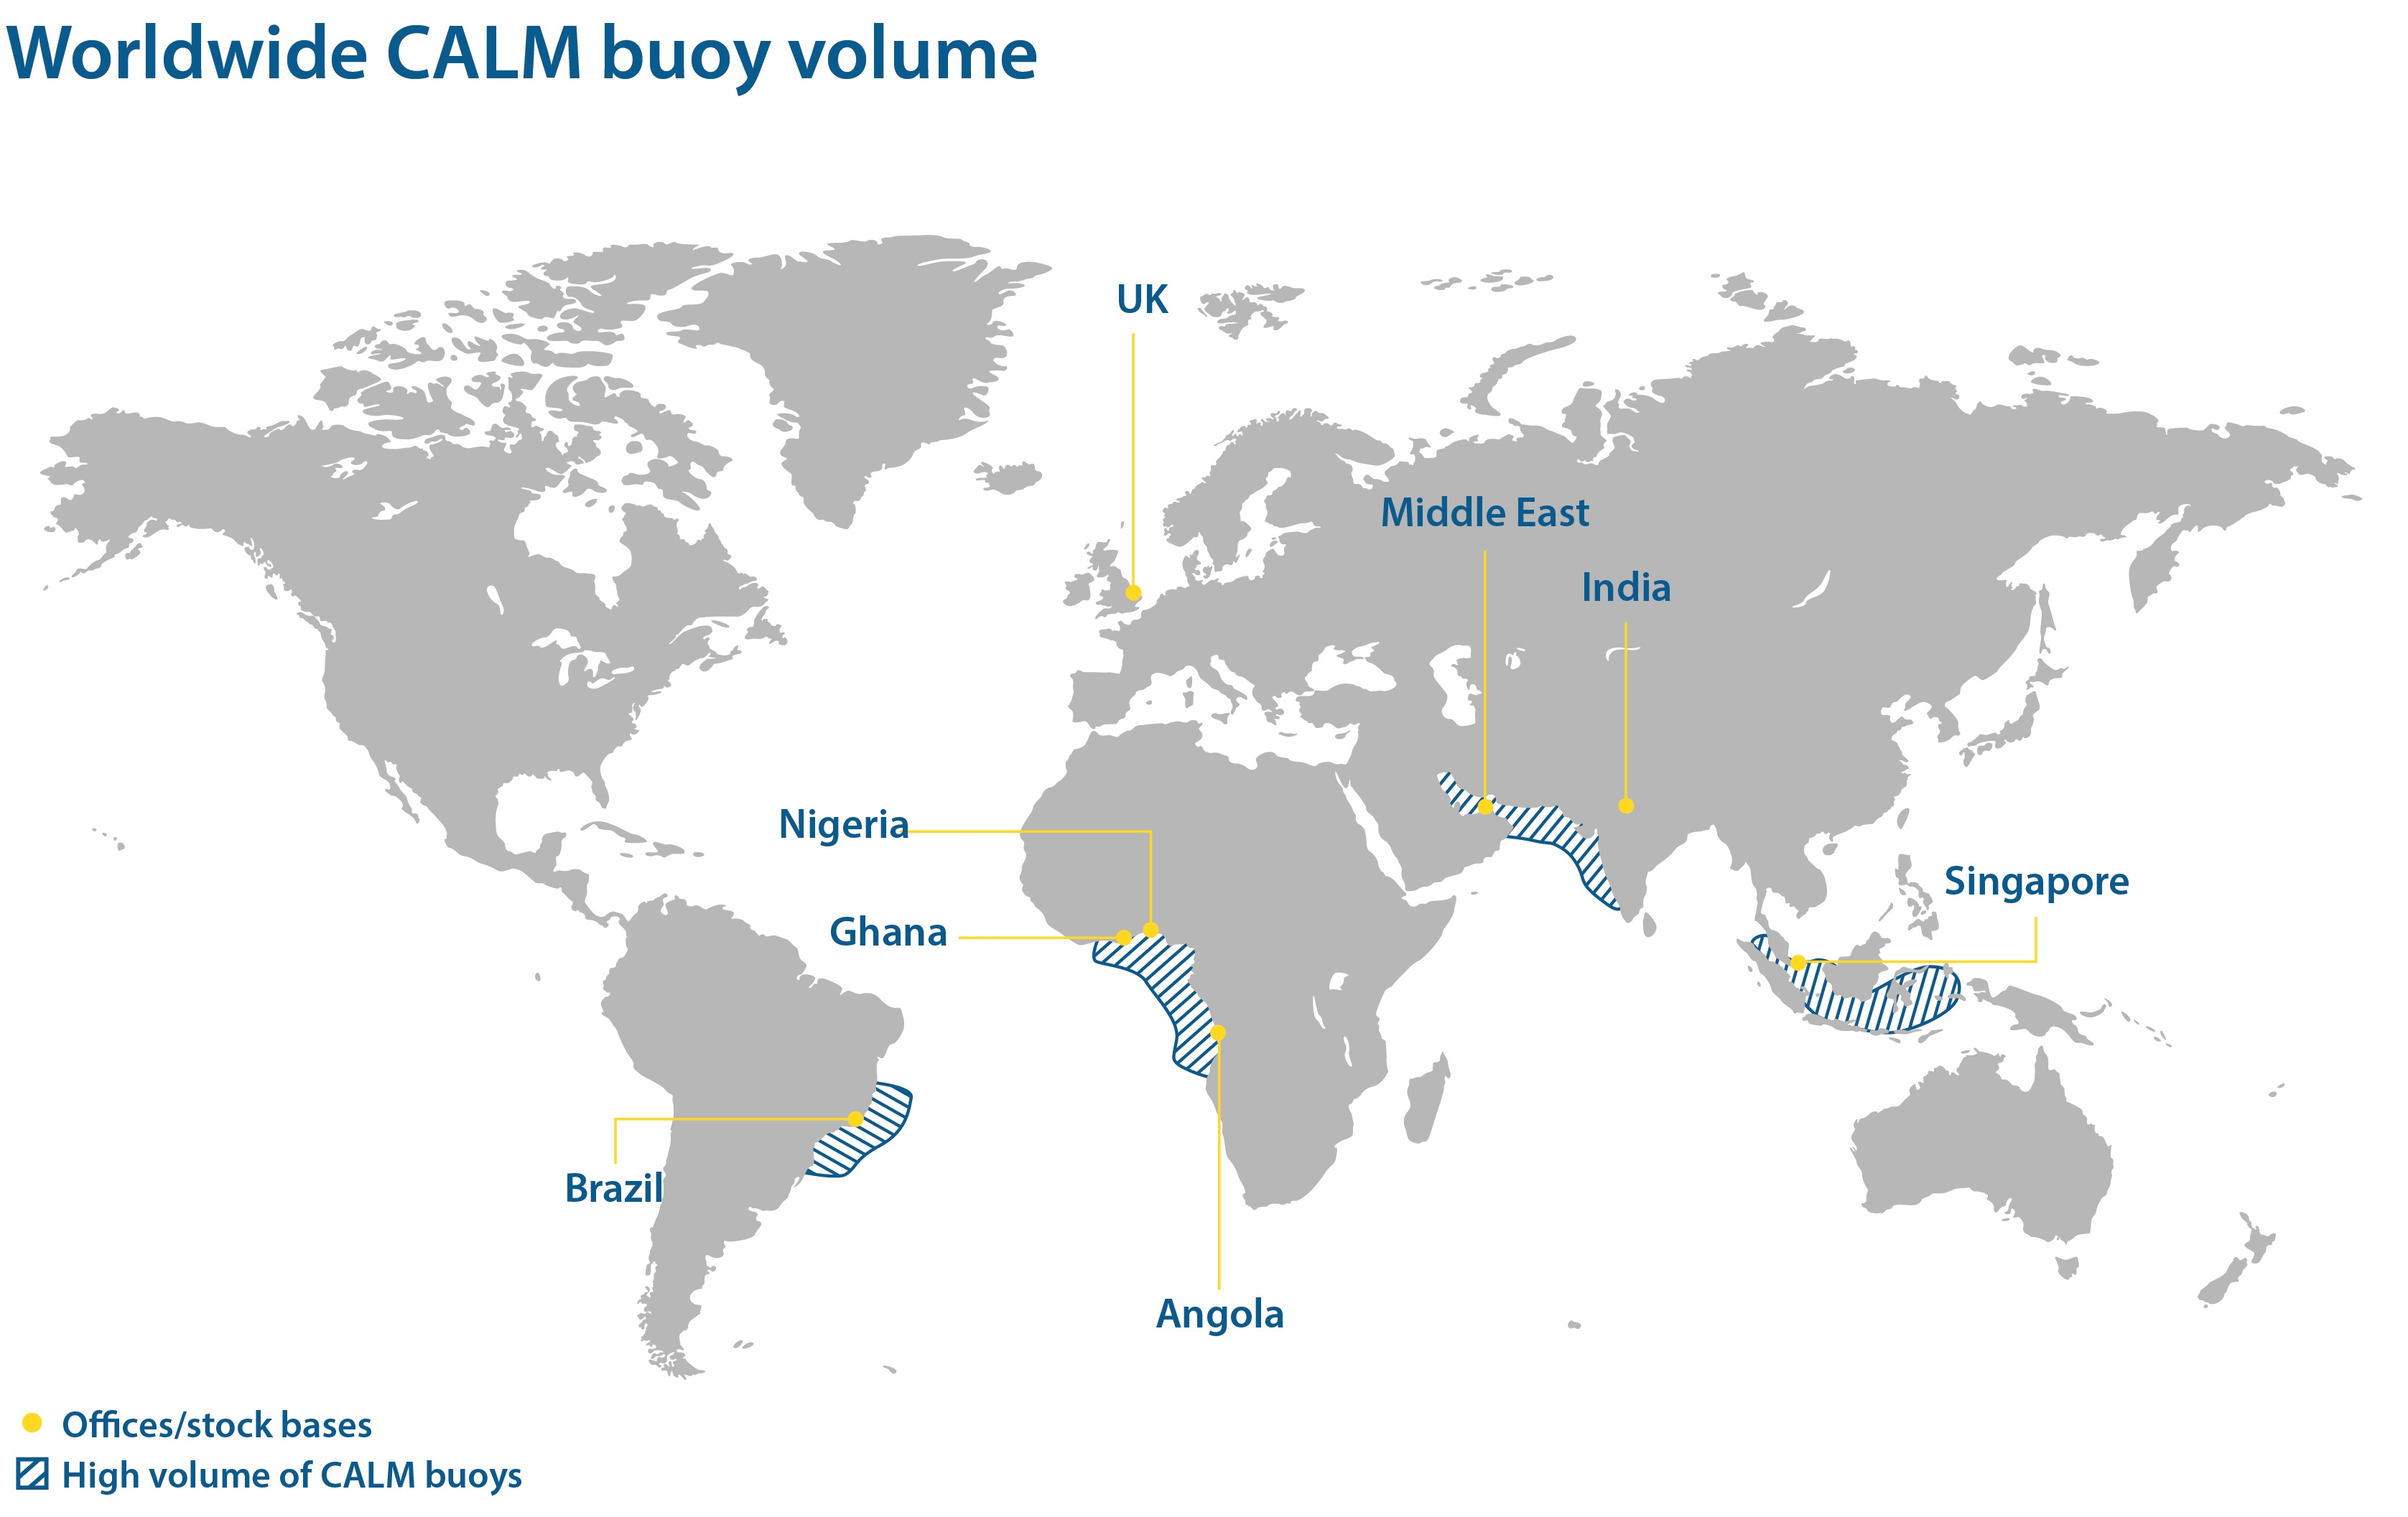 CALM_Buoy_Volume_Map.jpg